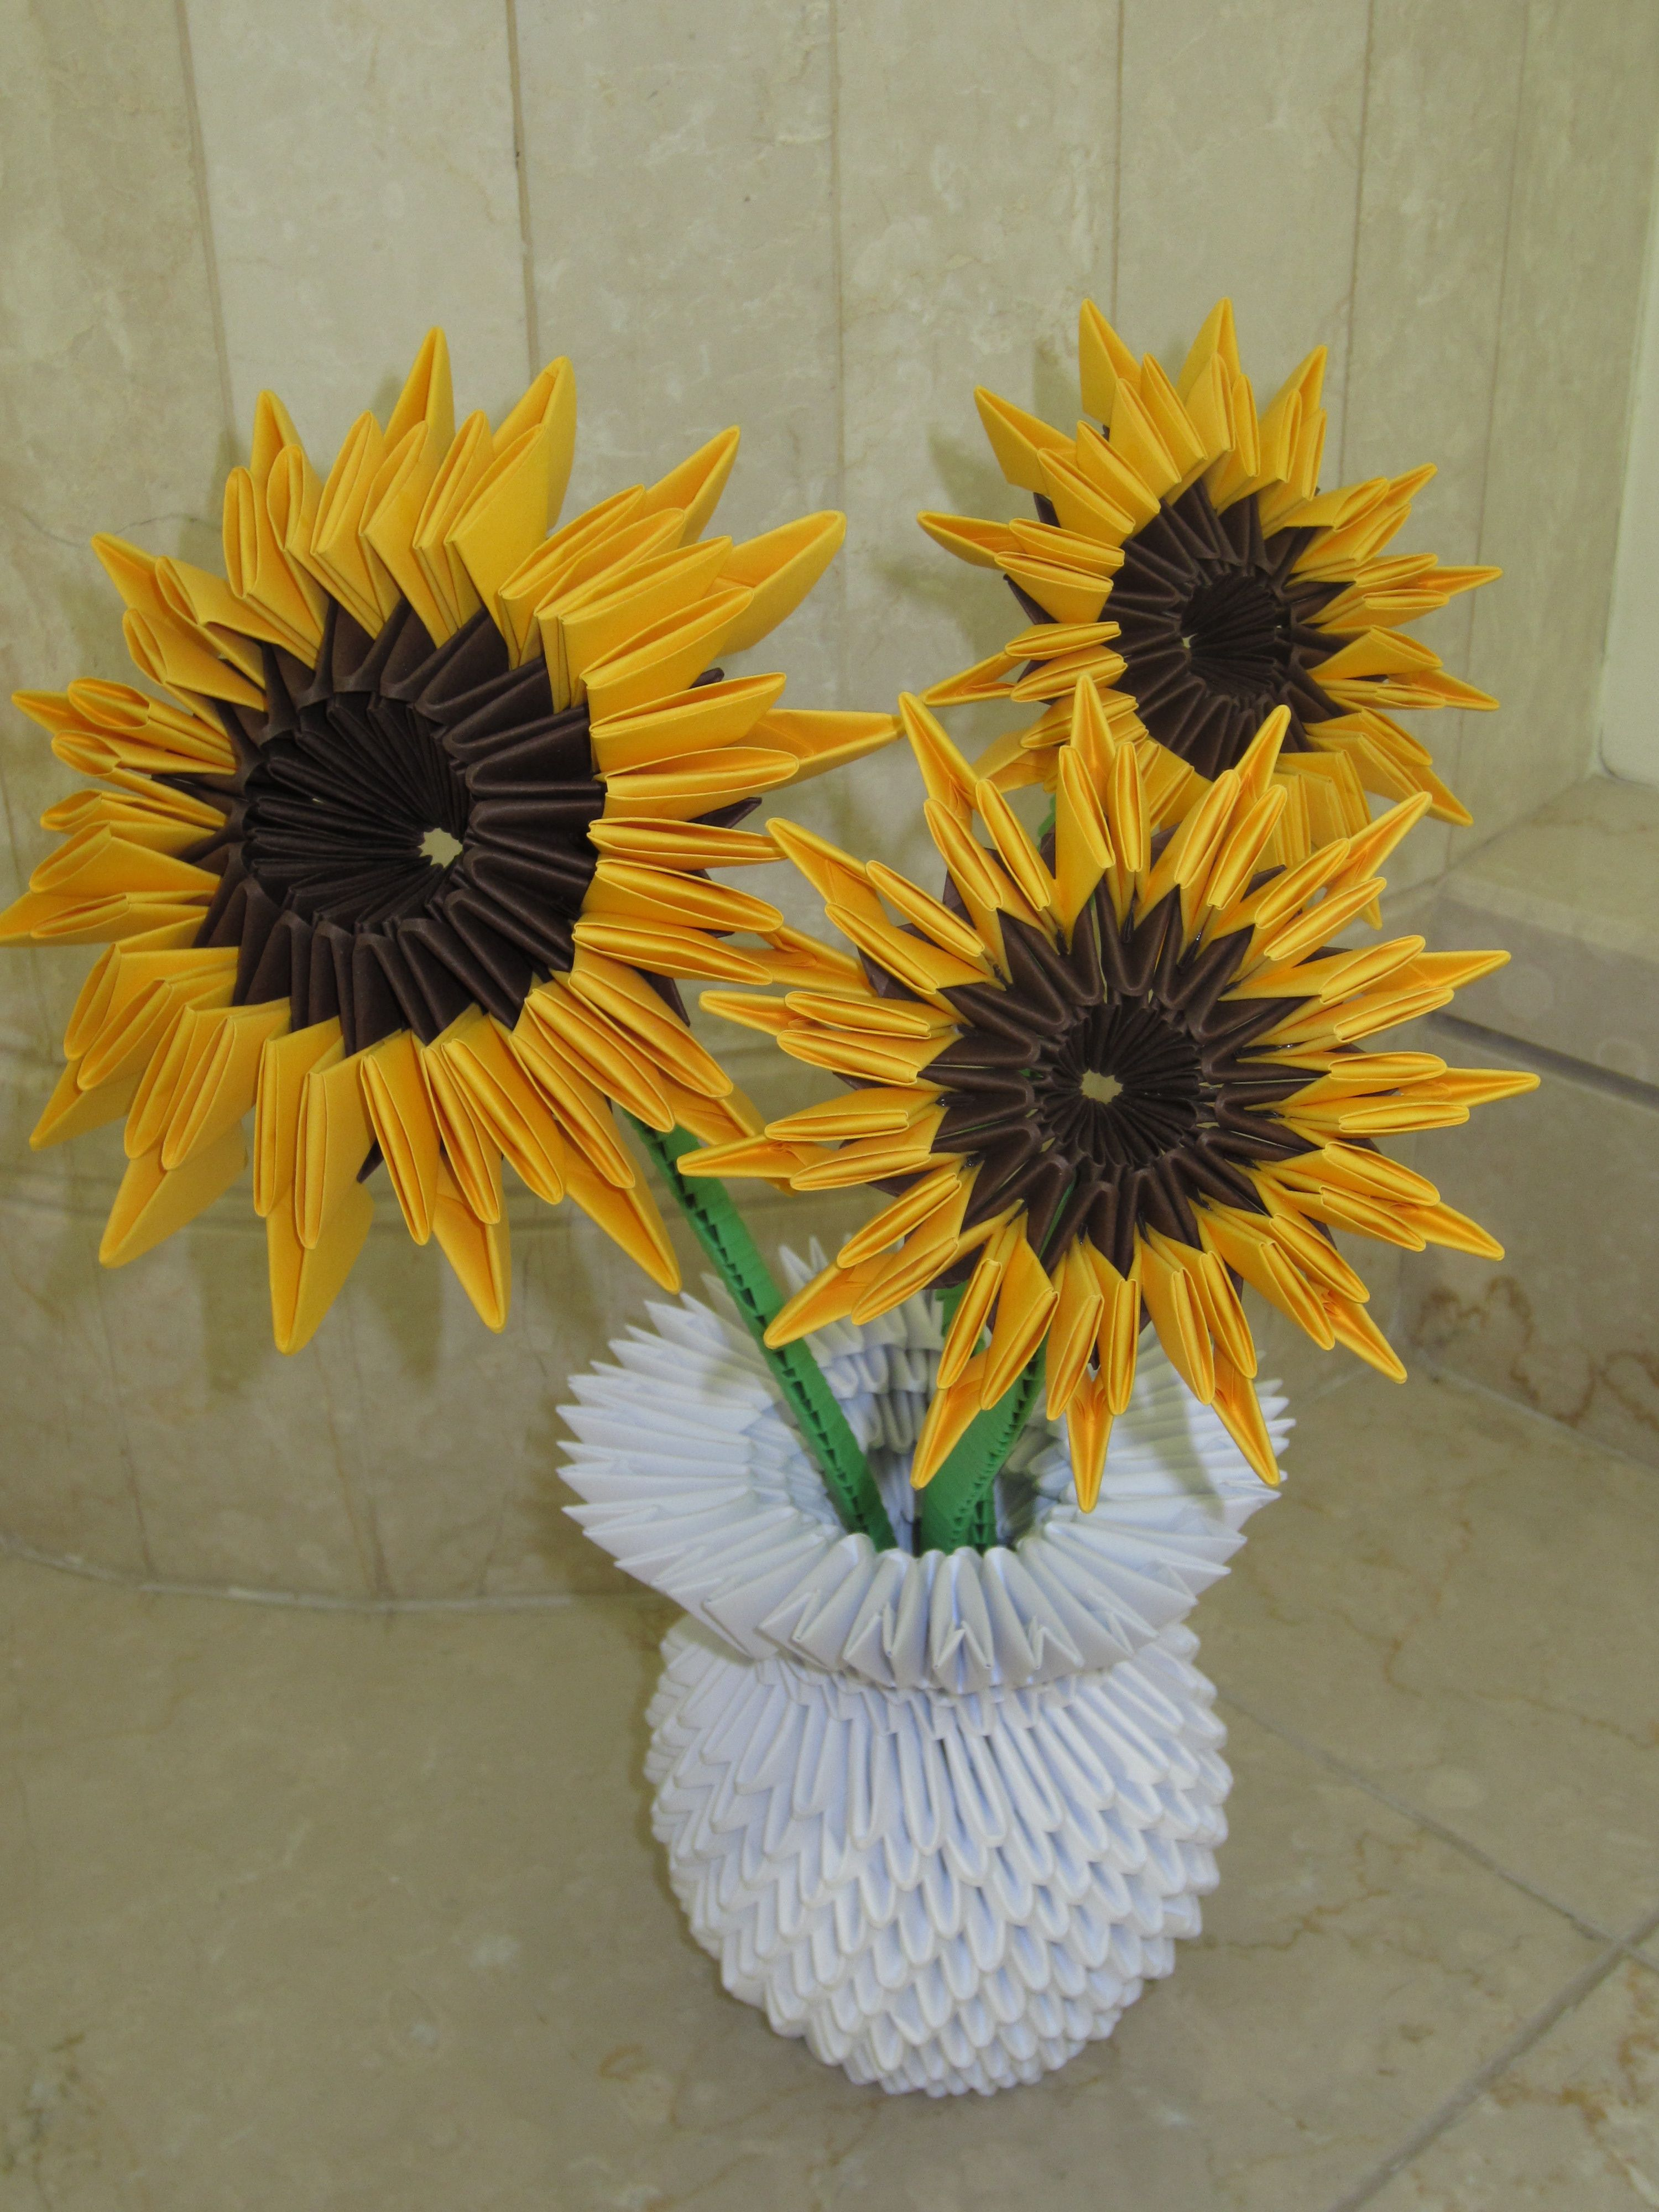 Evelyn's 3D Origami Sunflowers | Arts and Crafts ... - photo#48